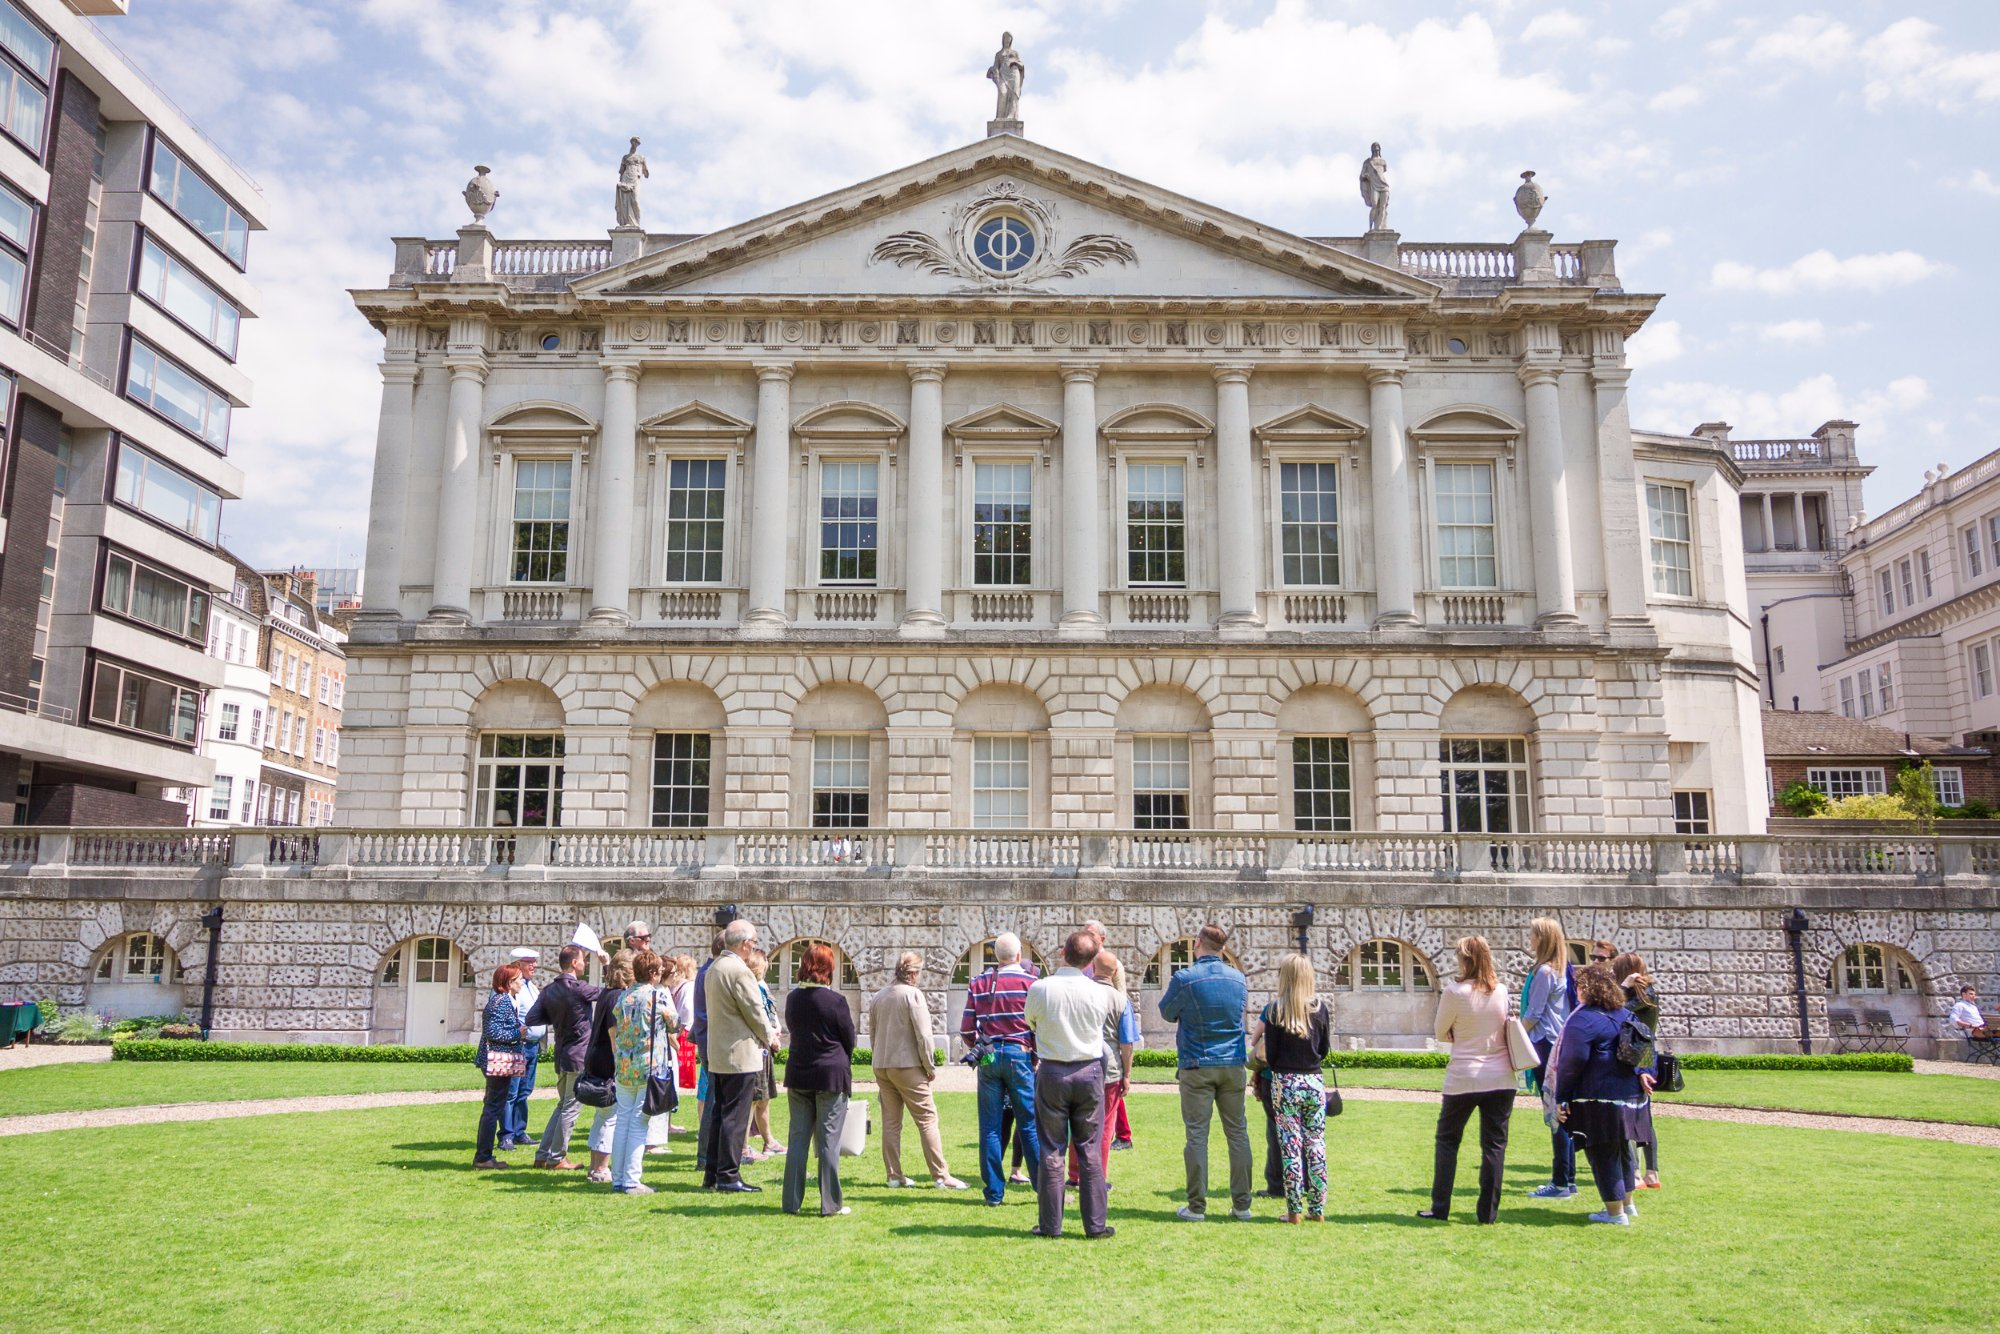 spencer house london england top tips before you go with